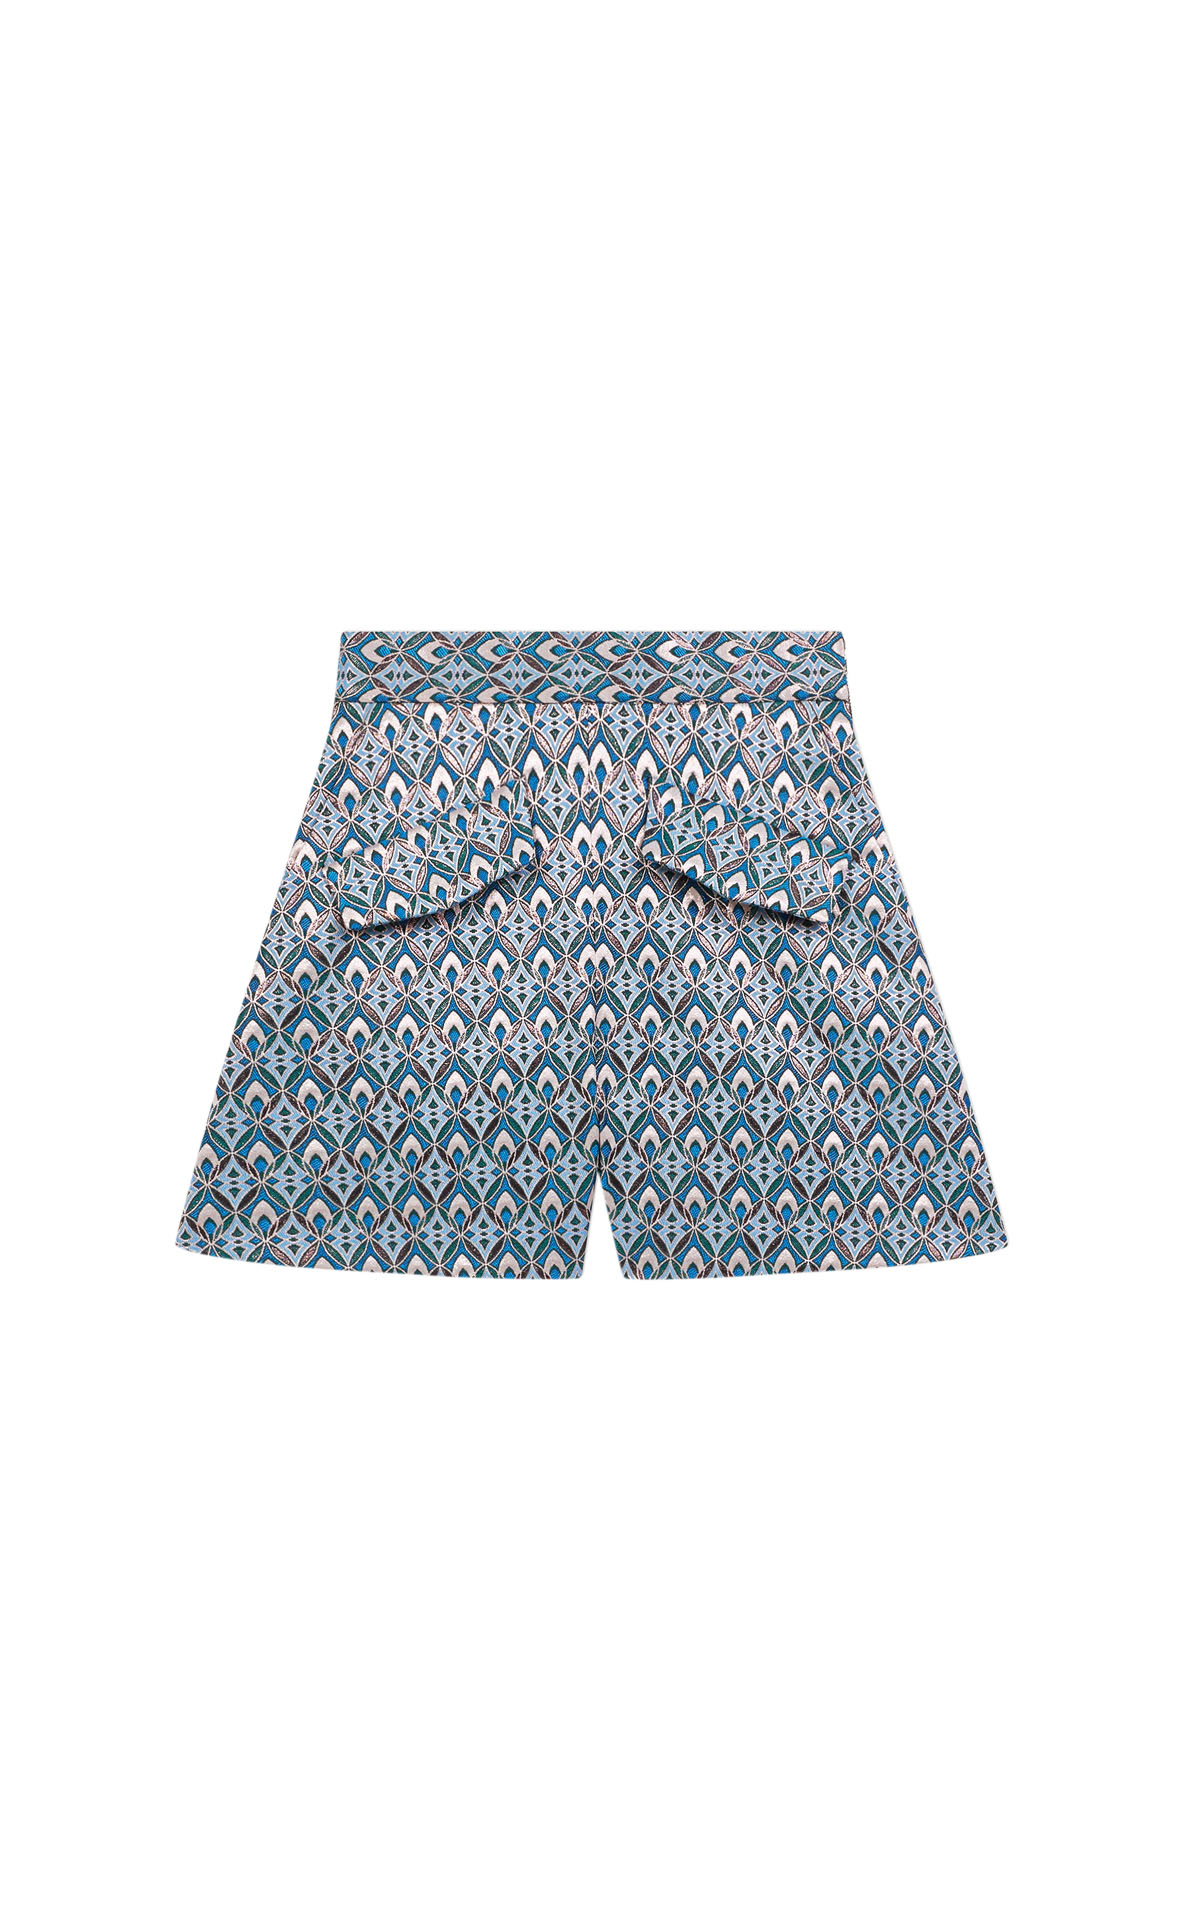 Maje Lurex Jacquard Shorts at The Bicester Village Shopping Collection